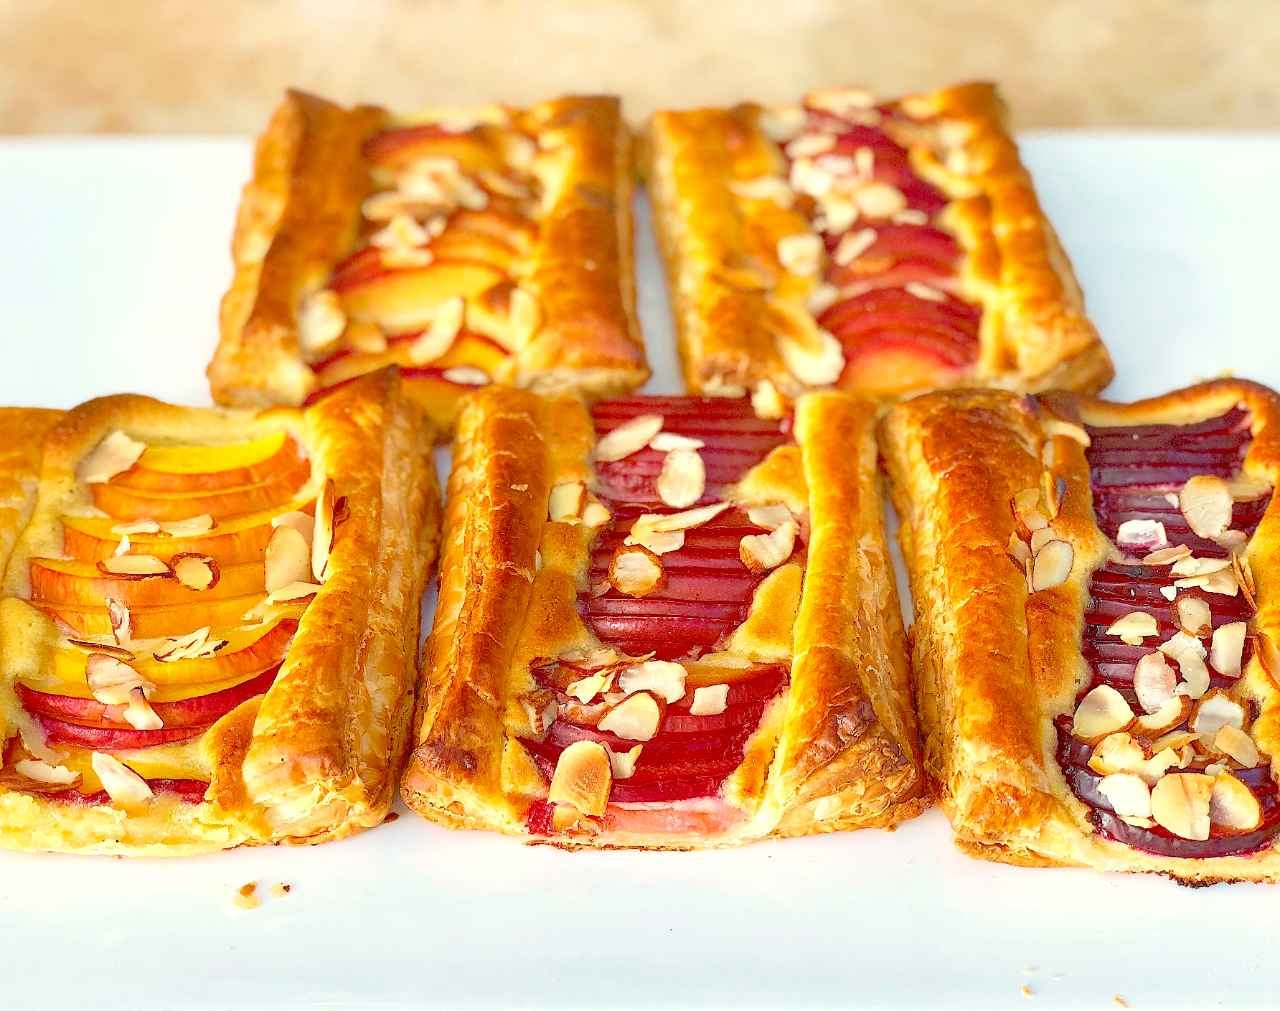 Fruit tart recipe with almond and stone fruit